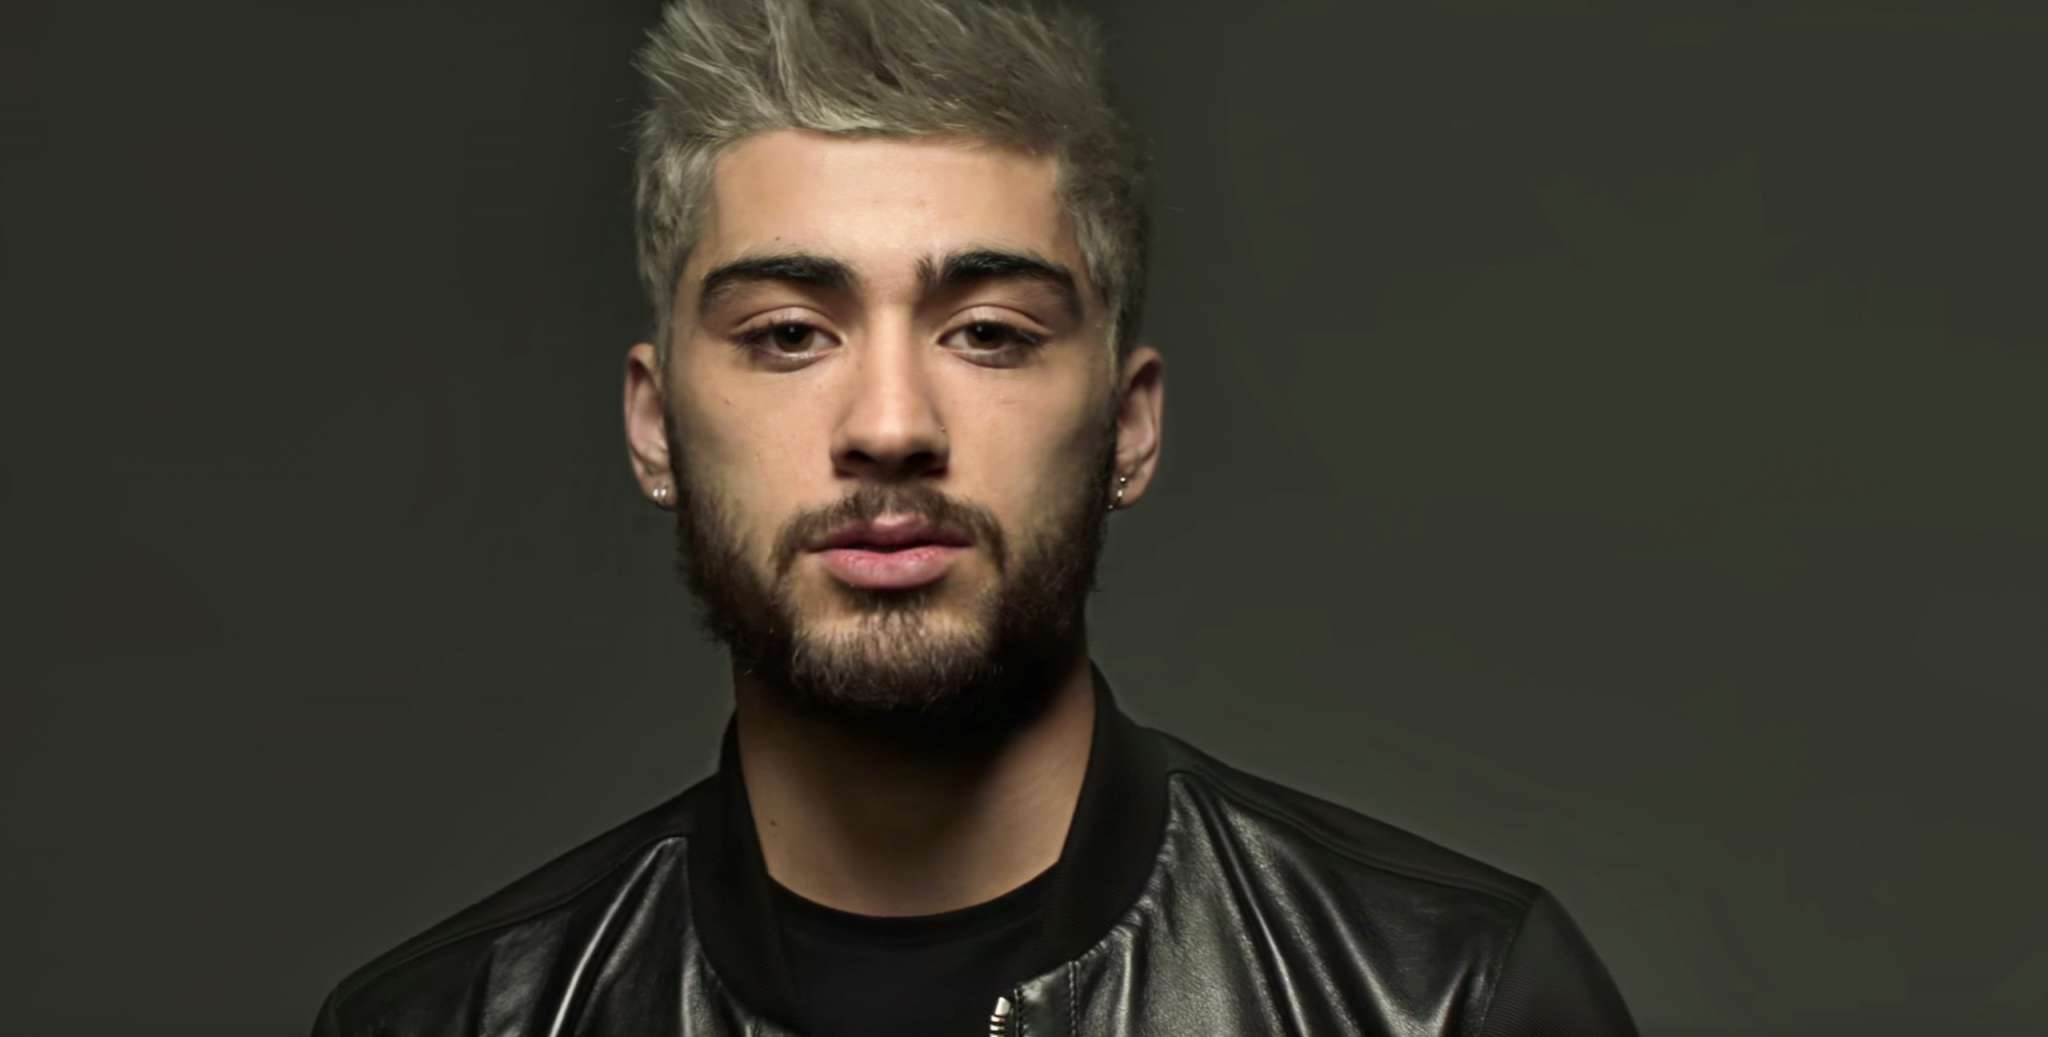 Zayn Malik Tweets His Followers To 'Leave Gigi Hadid The F**k Alone'